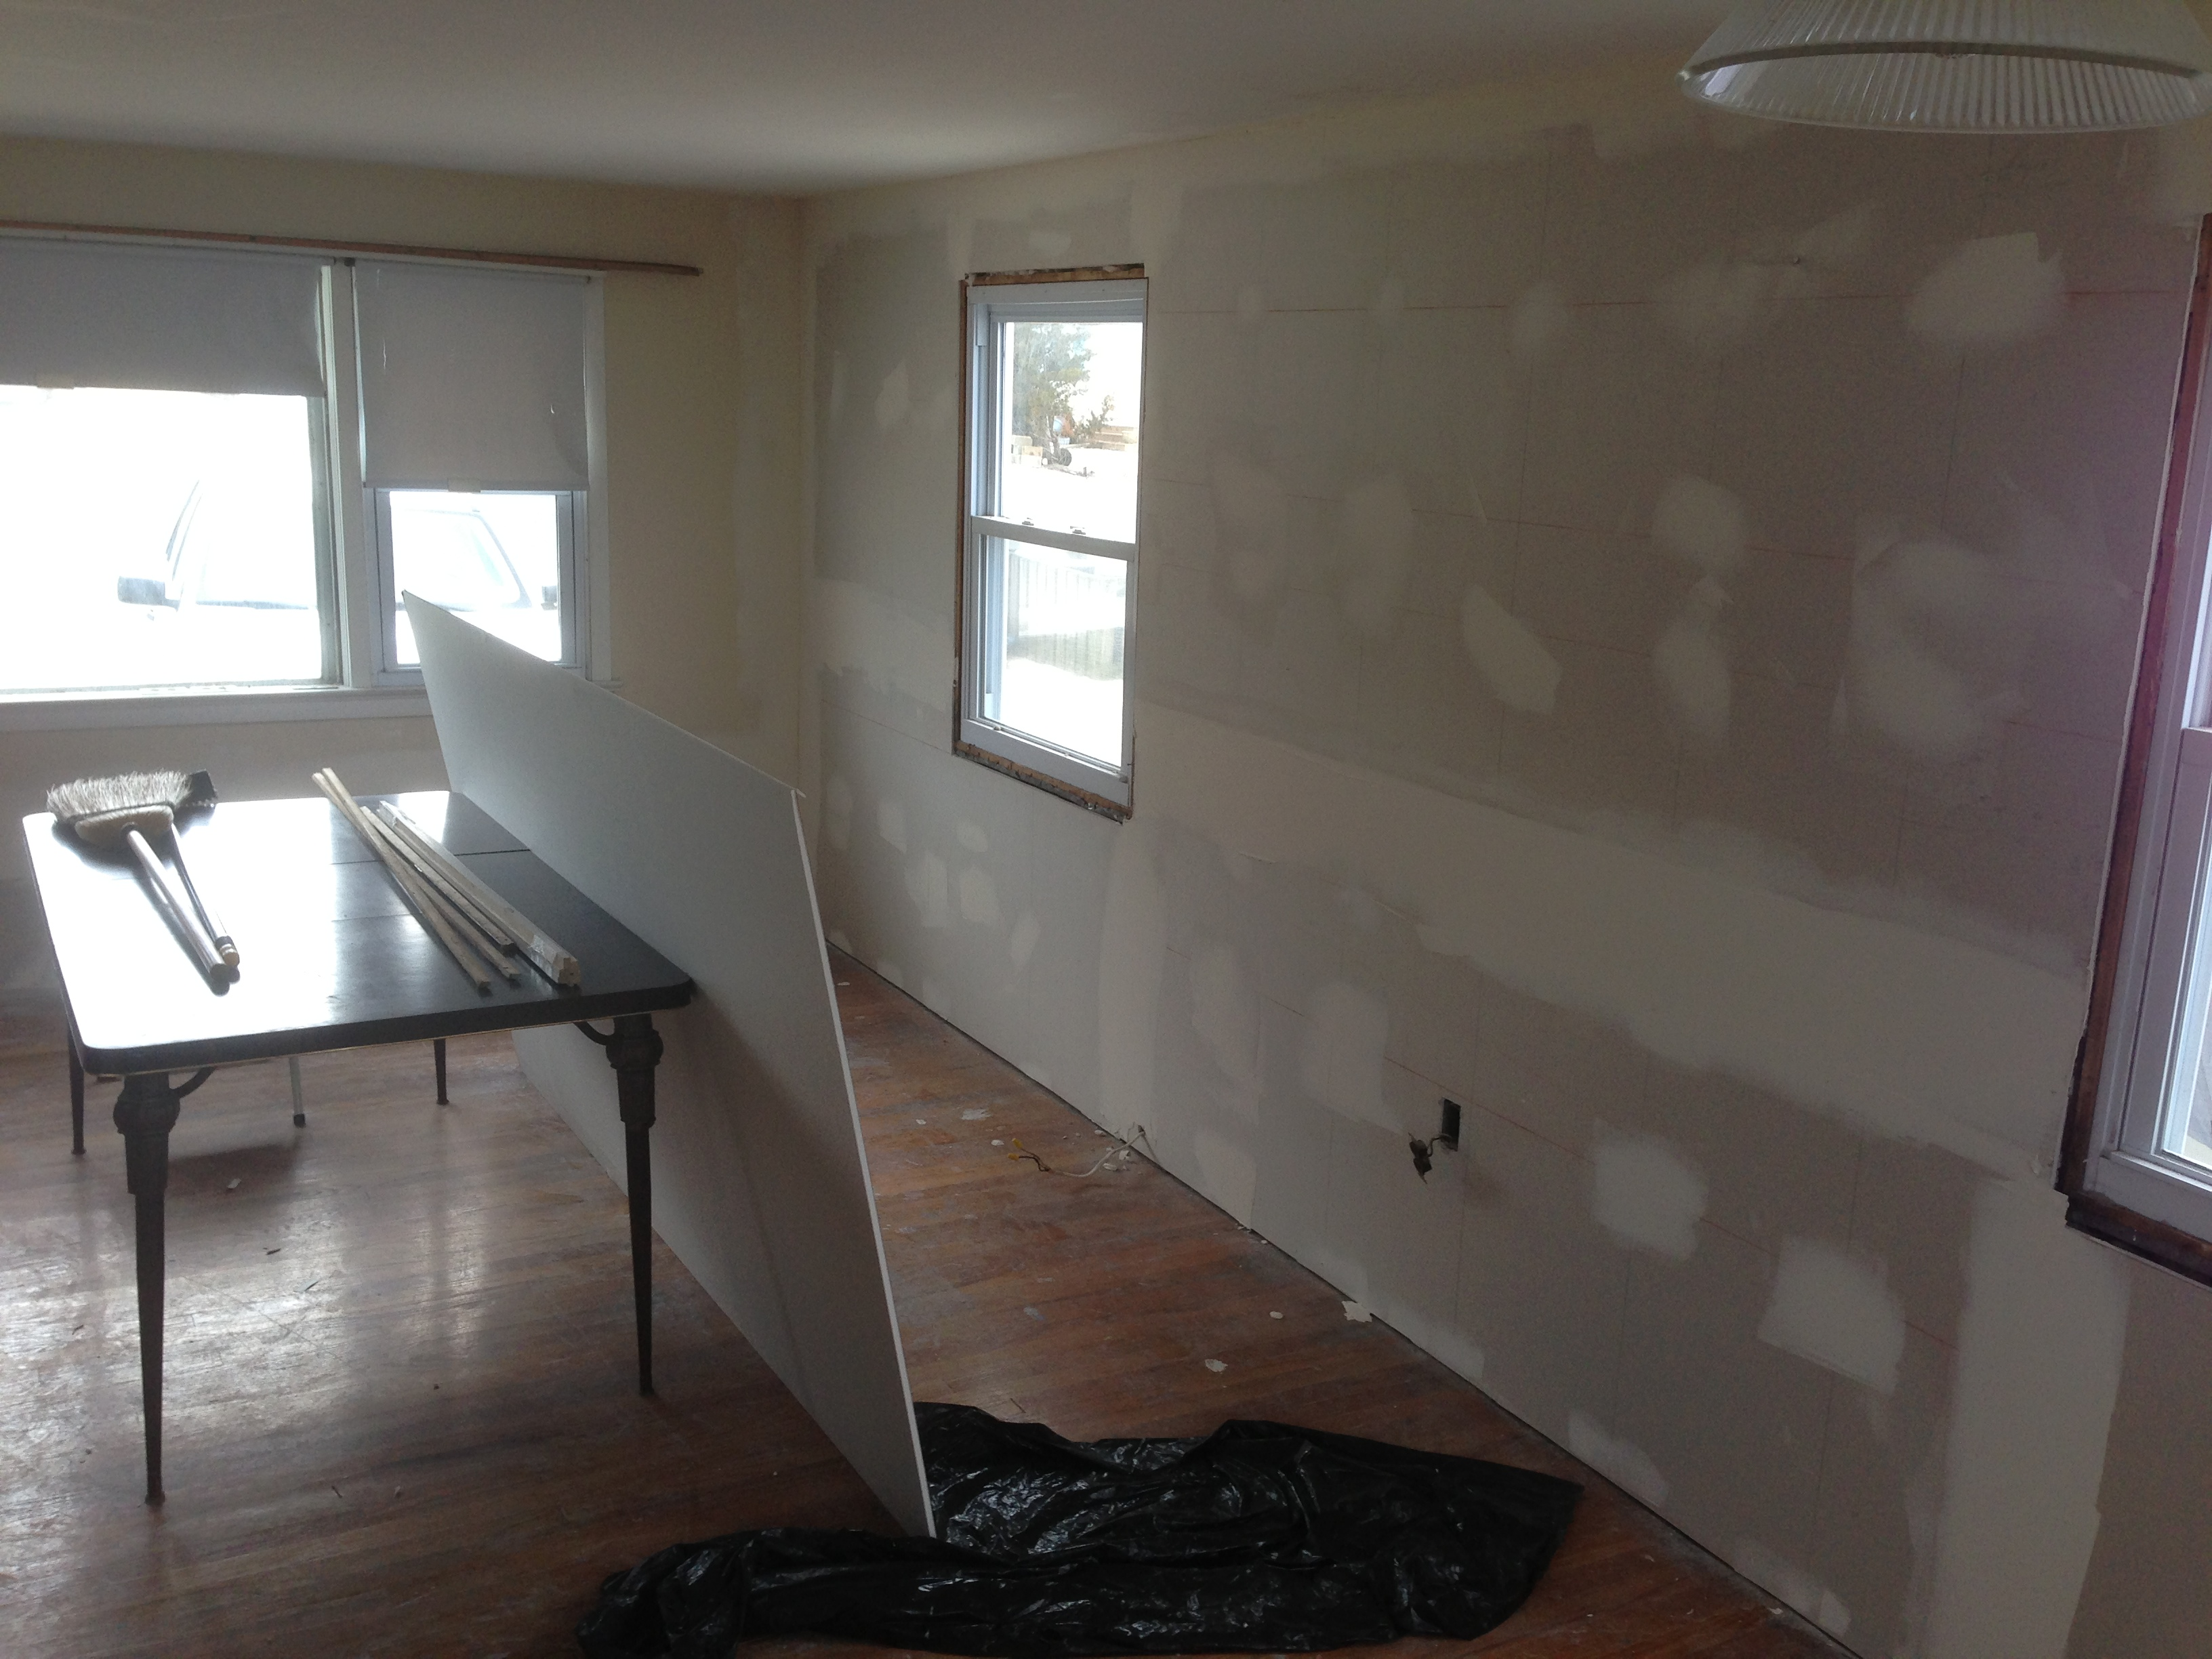 The interior of a home damaged by Superstorm Sandy. (Photo: Daniel Nee)